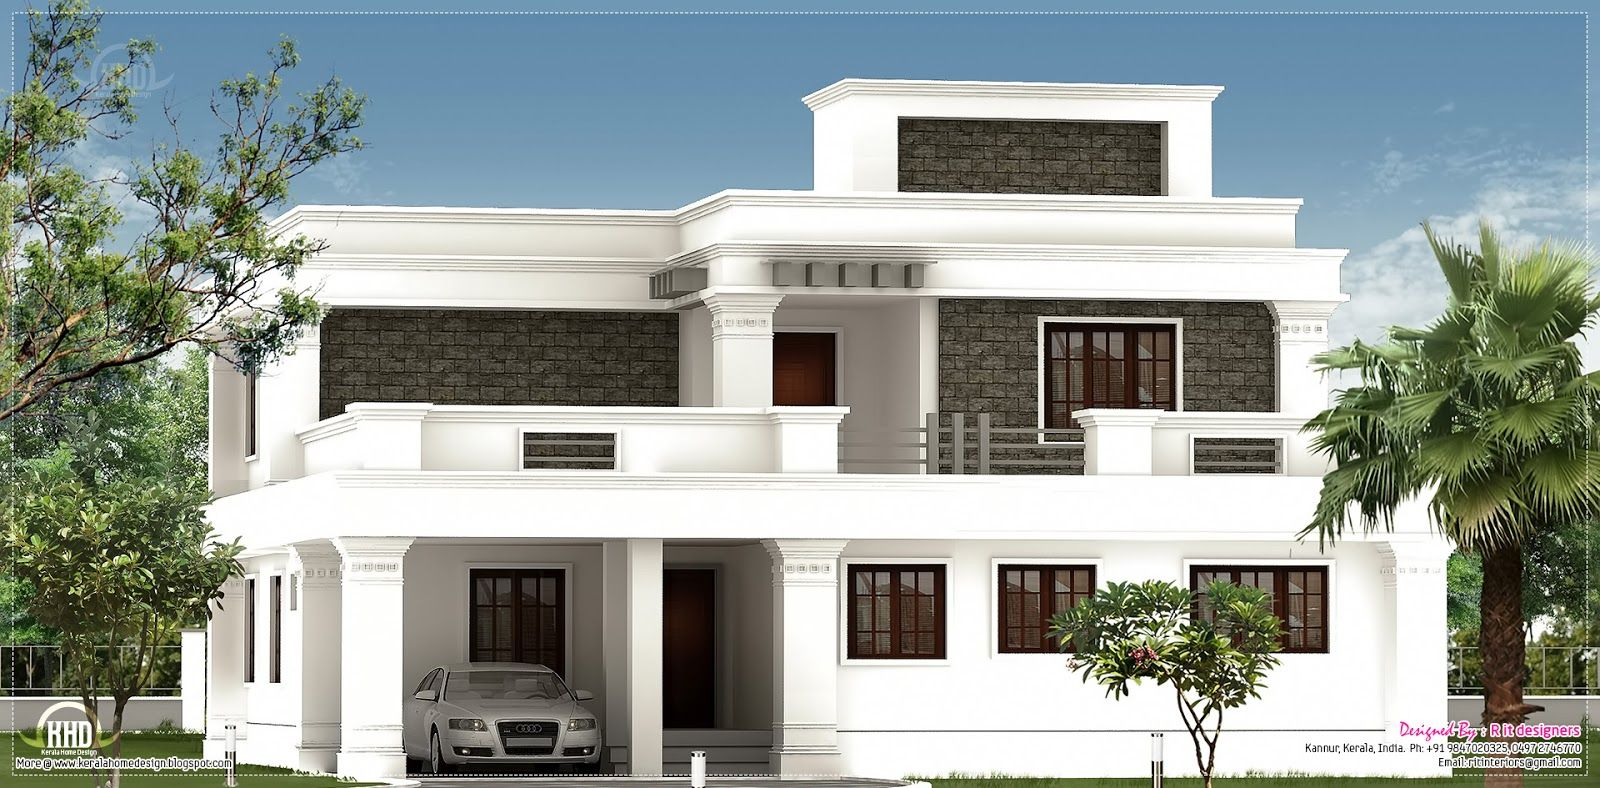 Flat Roof Homes Designs Flat Roof Villa Exterior In 2400 Kerala H